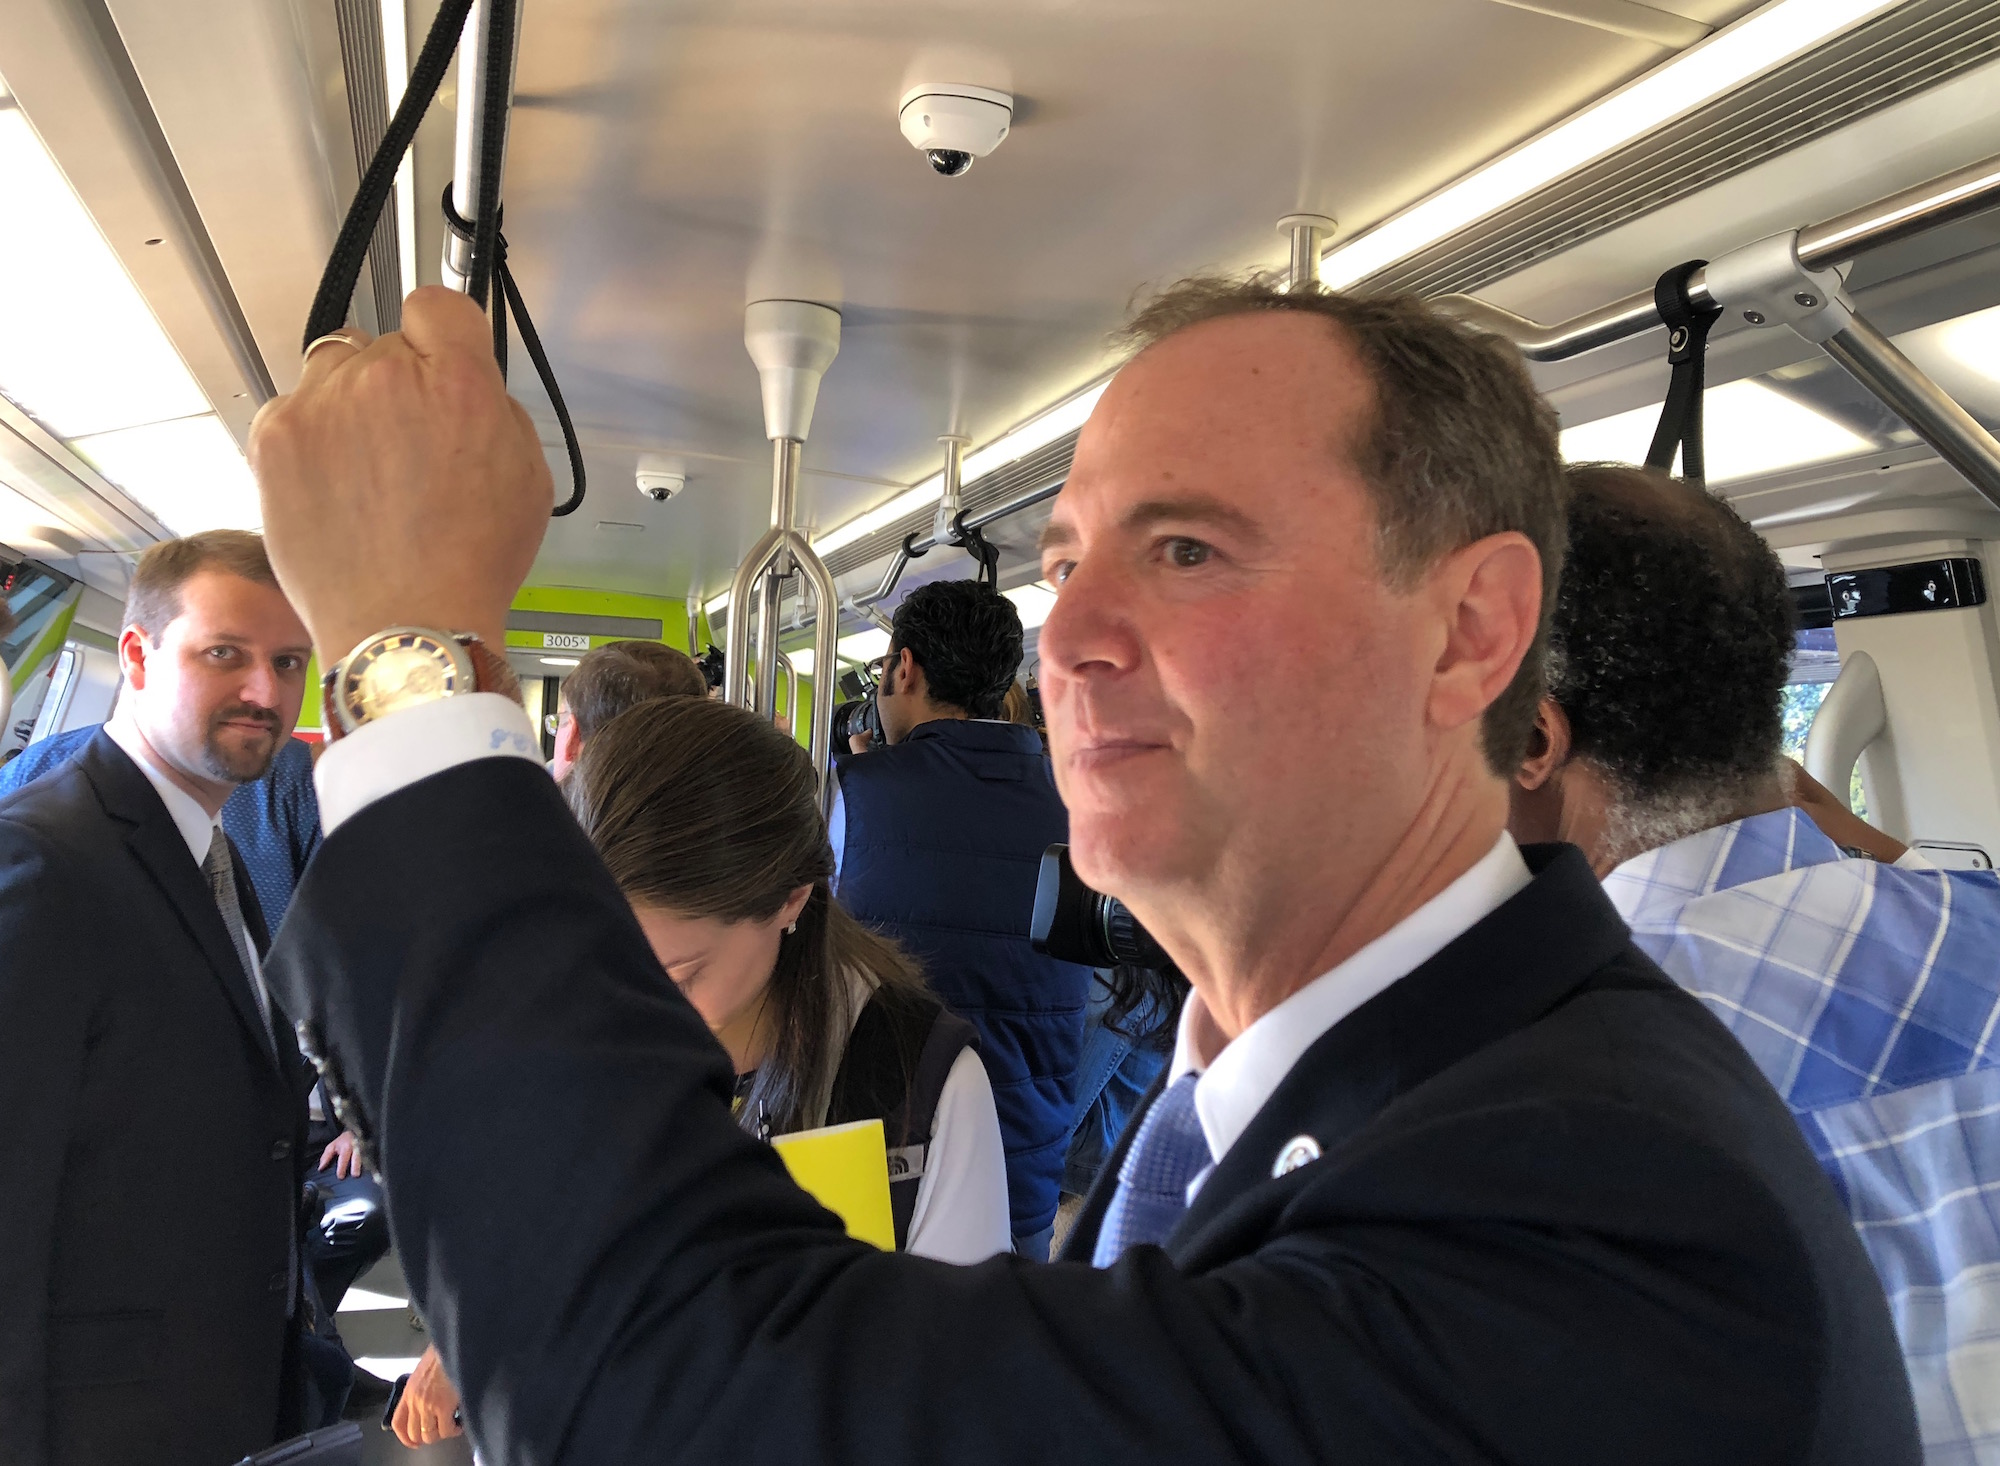 Photo: Rep. Adam Schiff on board BART in Oakland